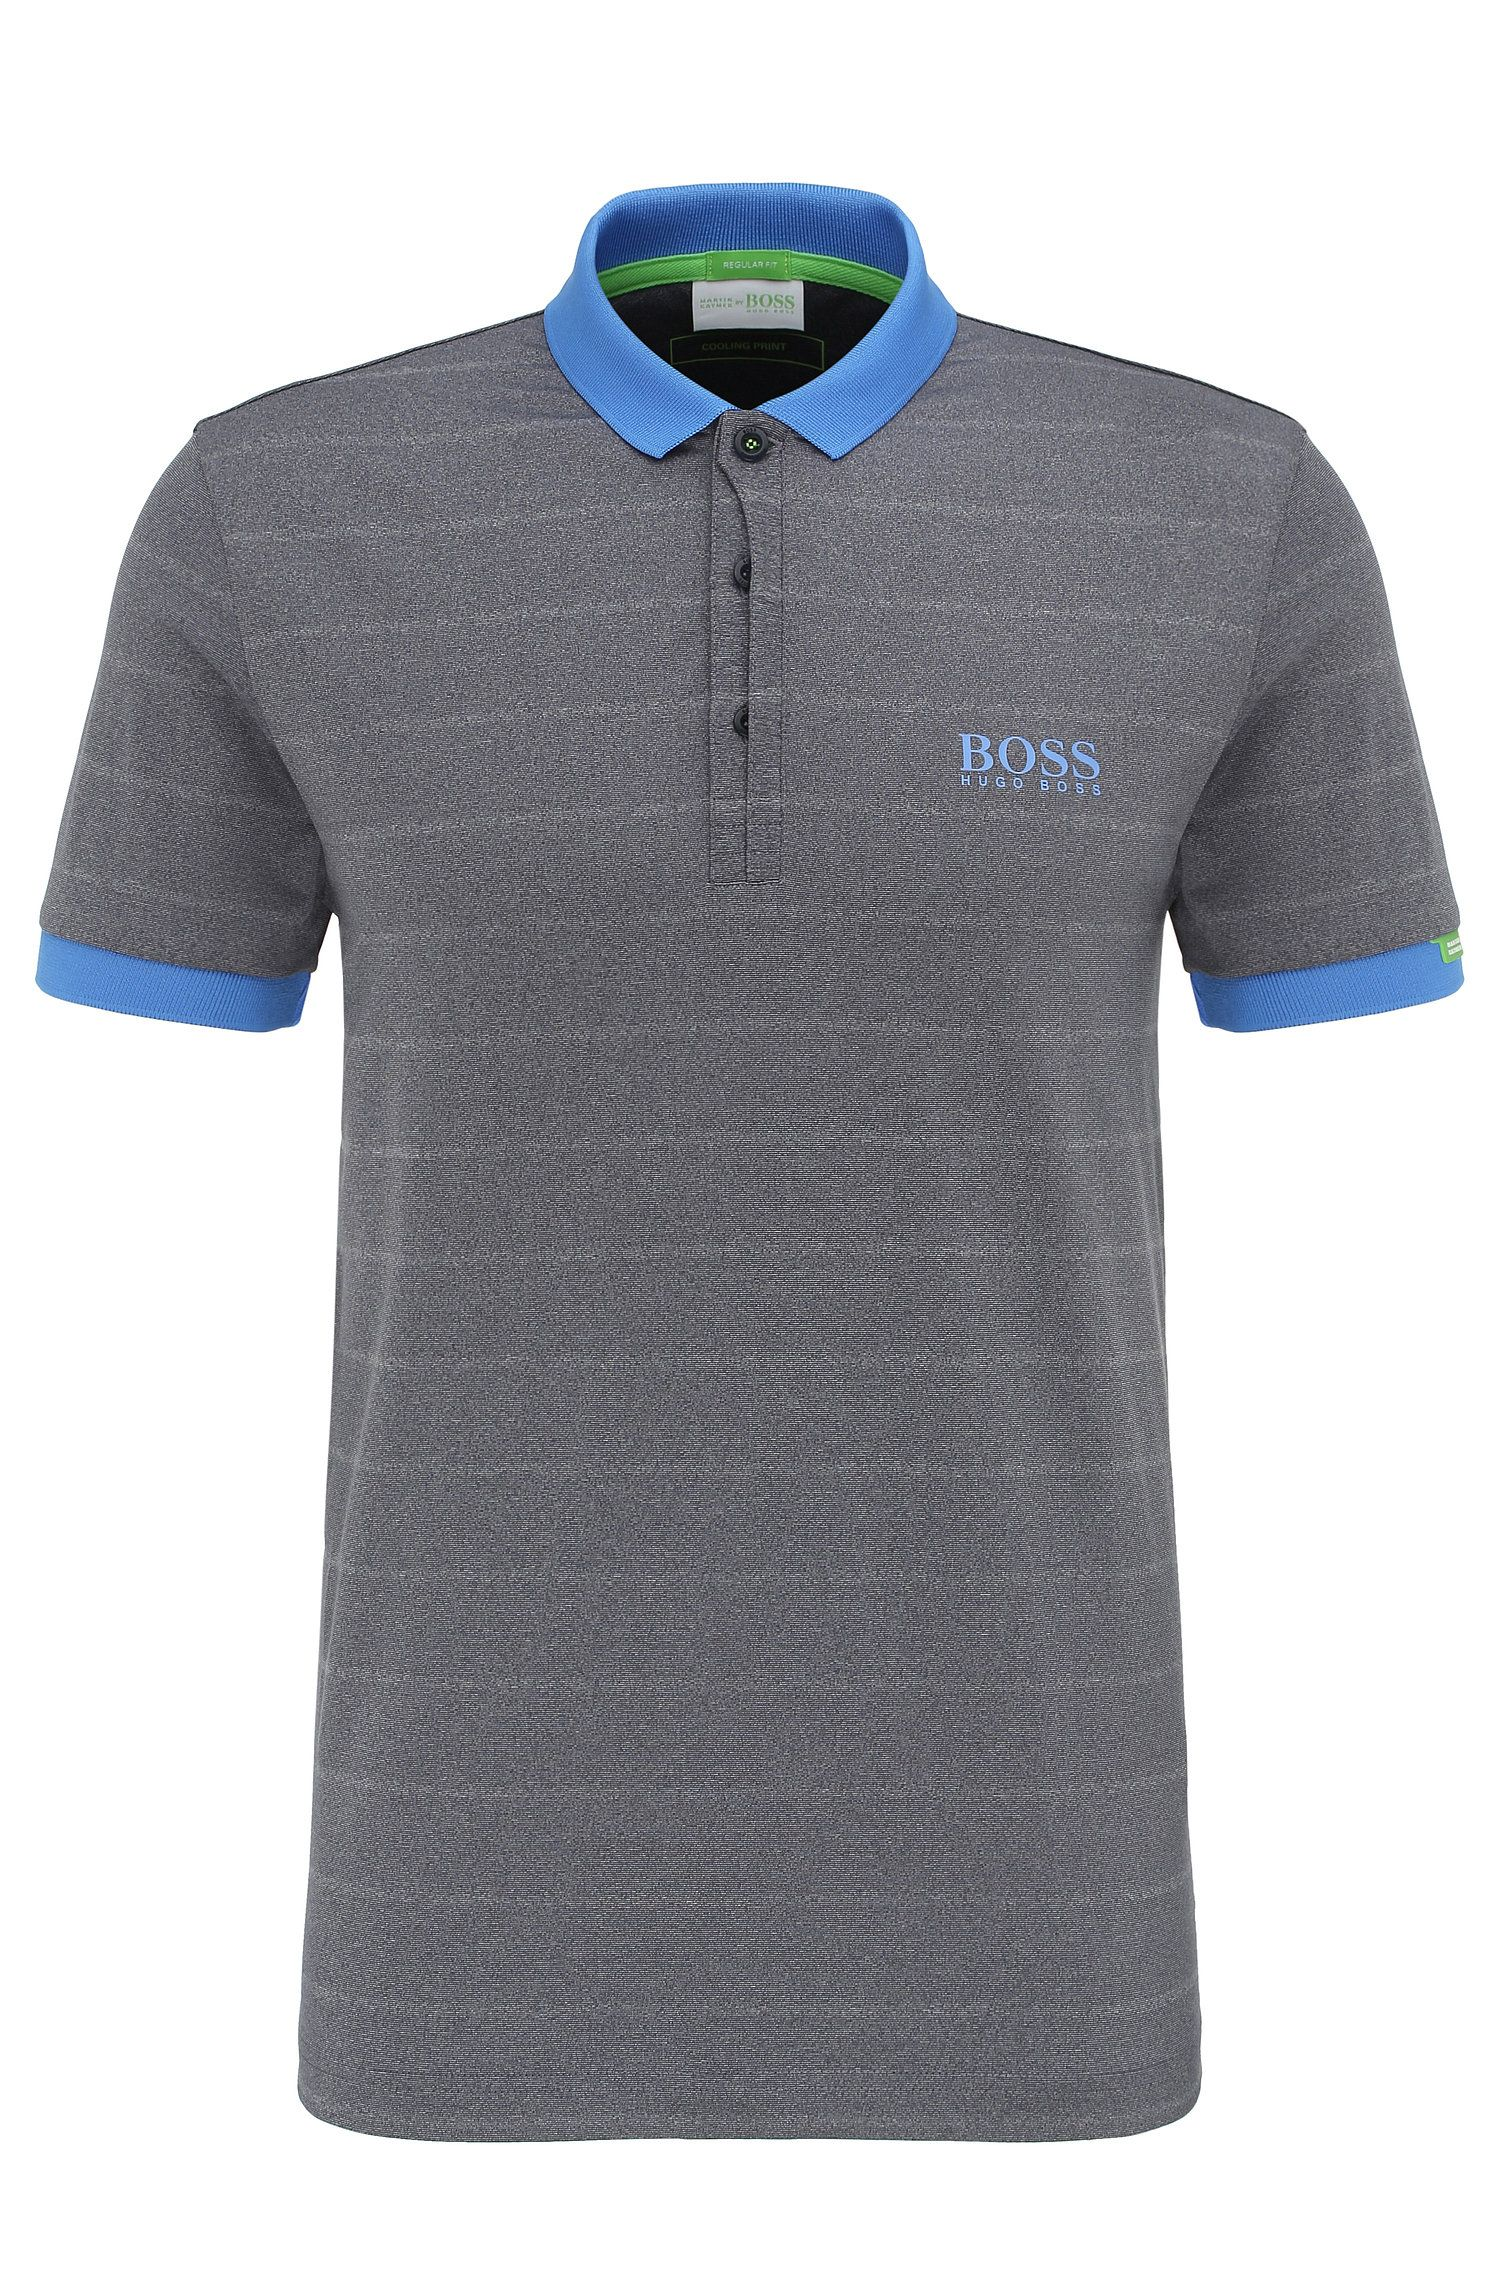 Regular-fit golf polo shirt in stretchy fabric blend. 'Paddy MK 1'